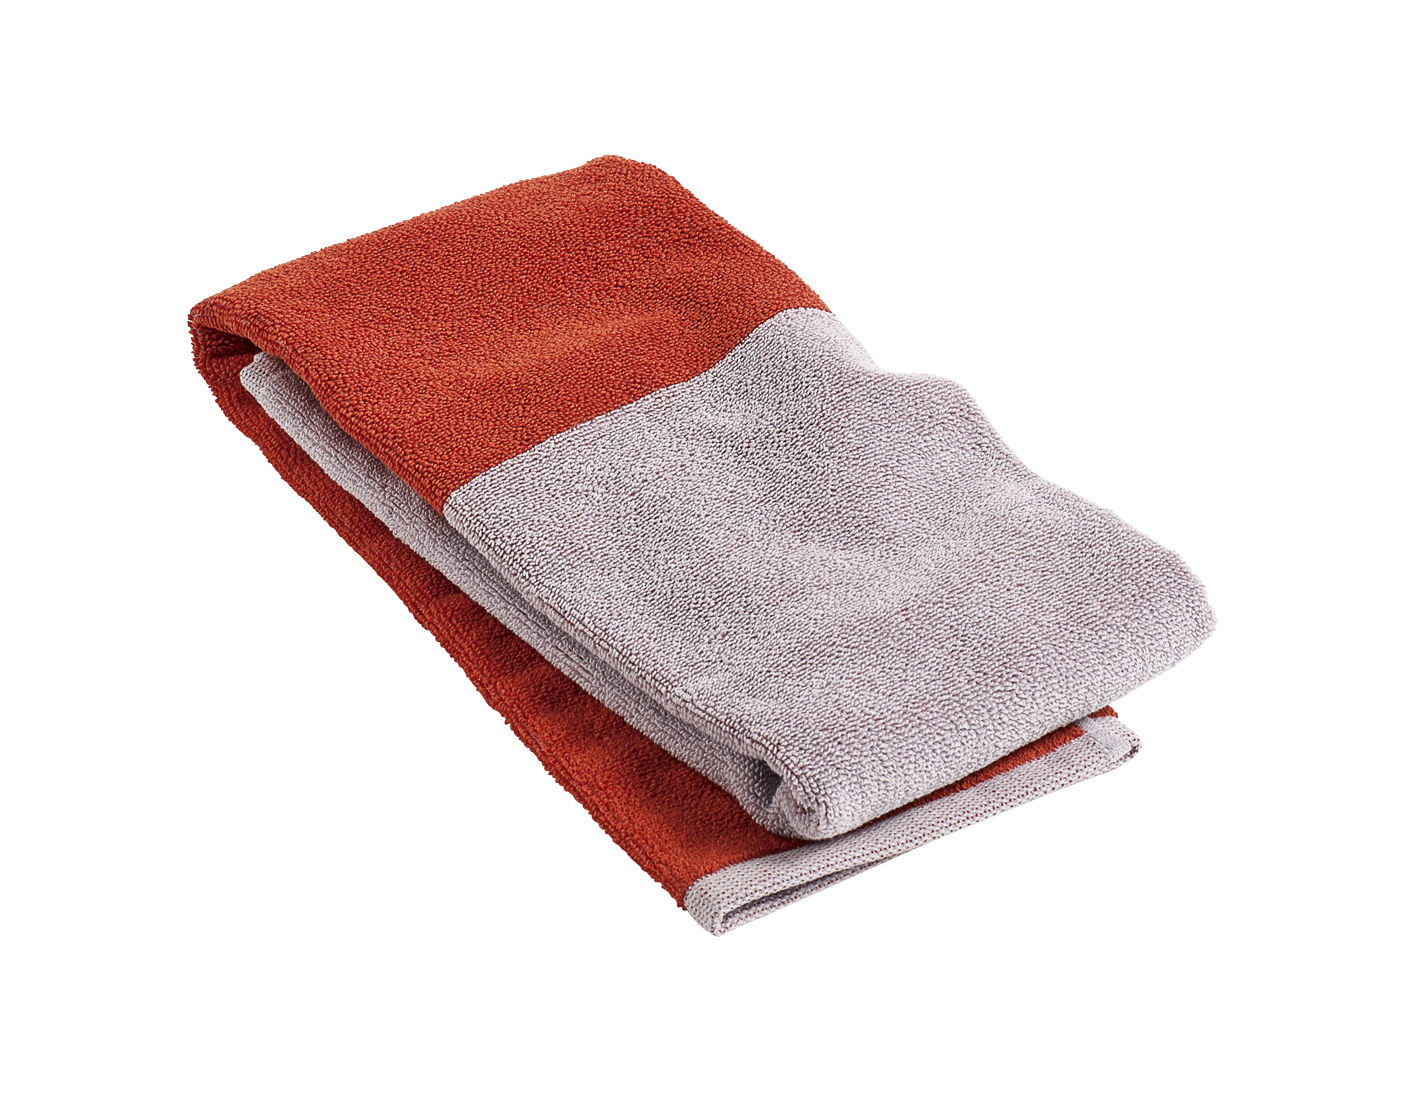 Accessories - Bathroom Accessories - Compose Hand towel - 100 x 50 cm by Hay - Red - Cotton